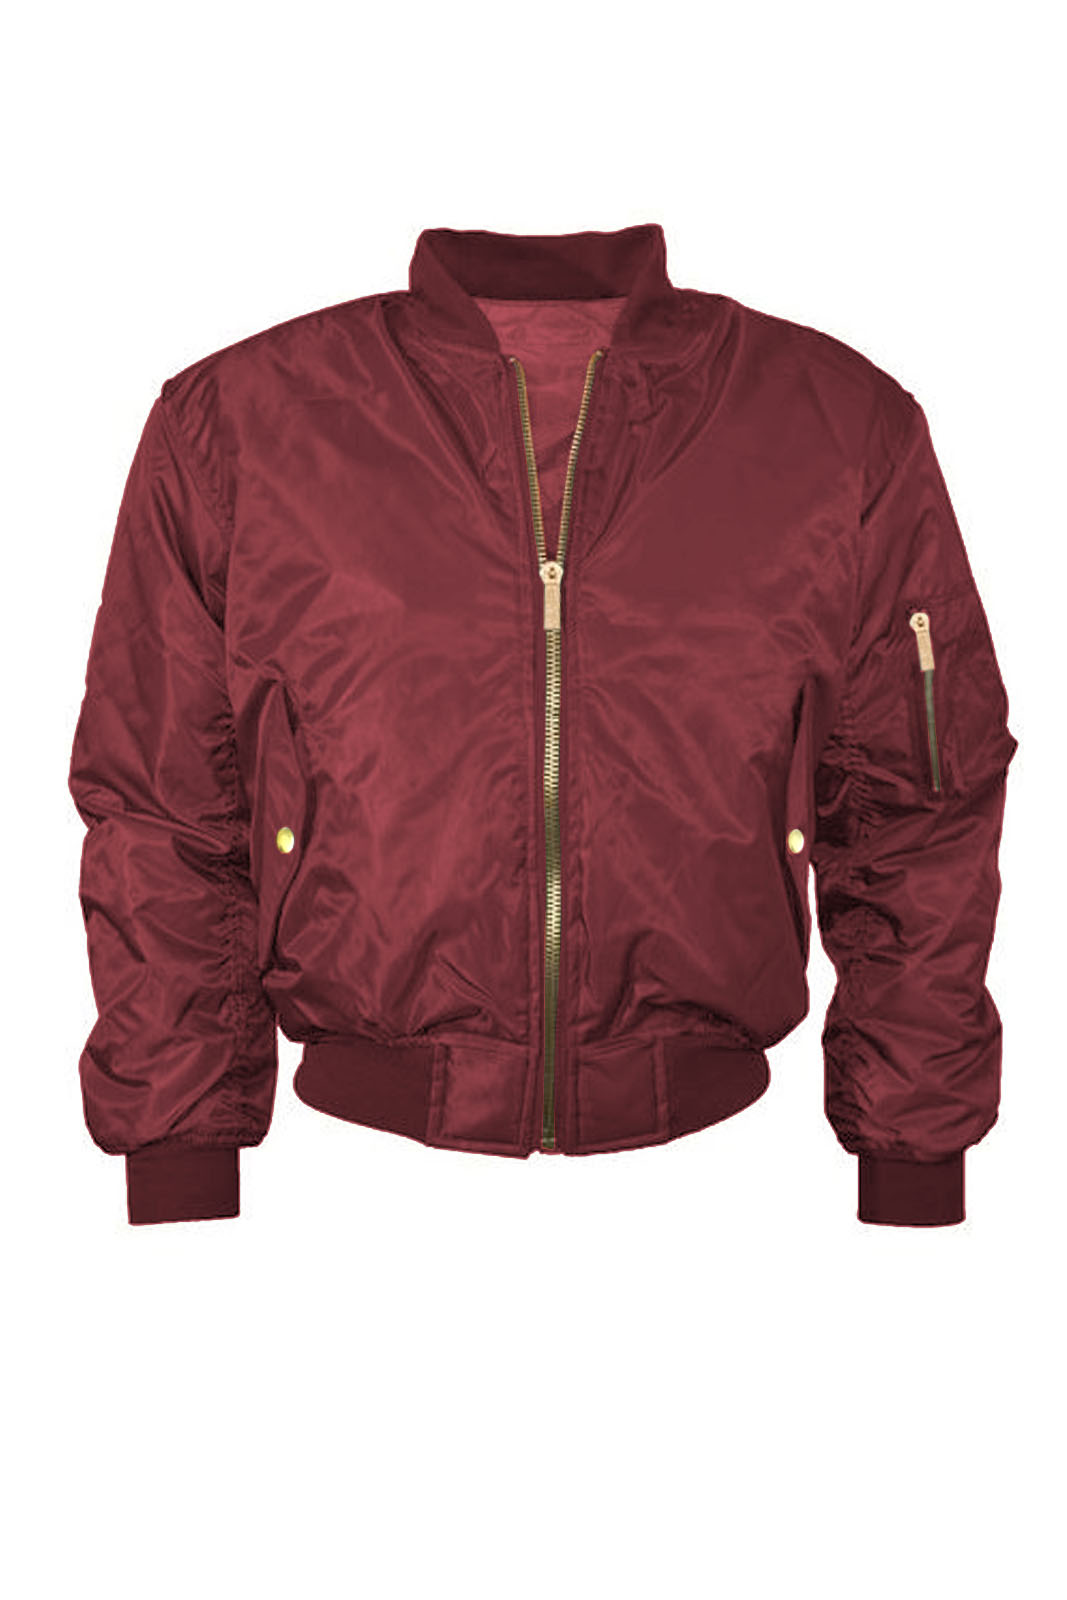 Womens Red Bomber Jacket Jacket To